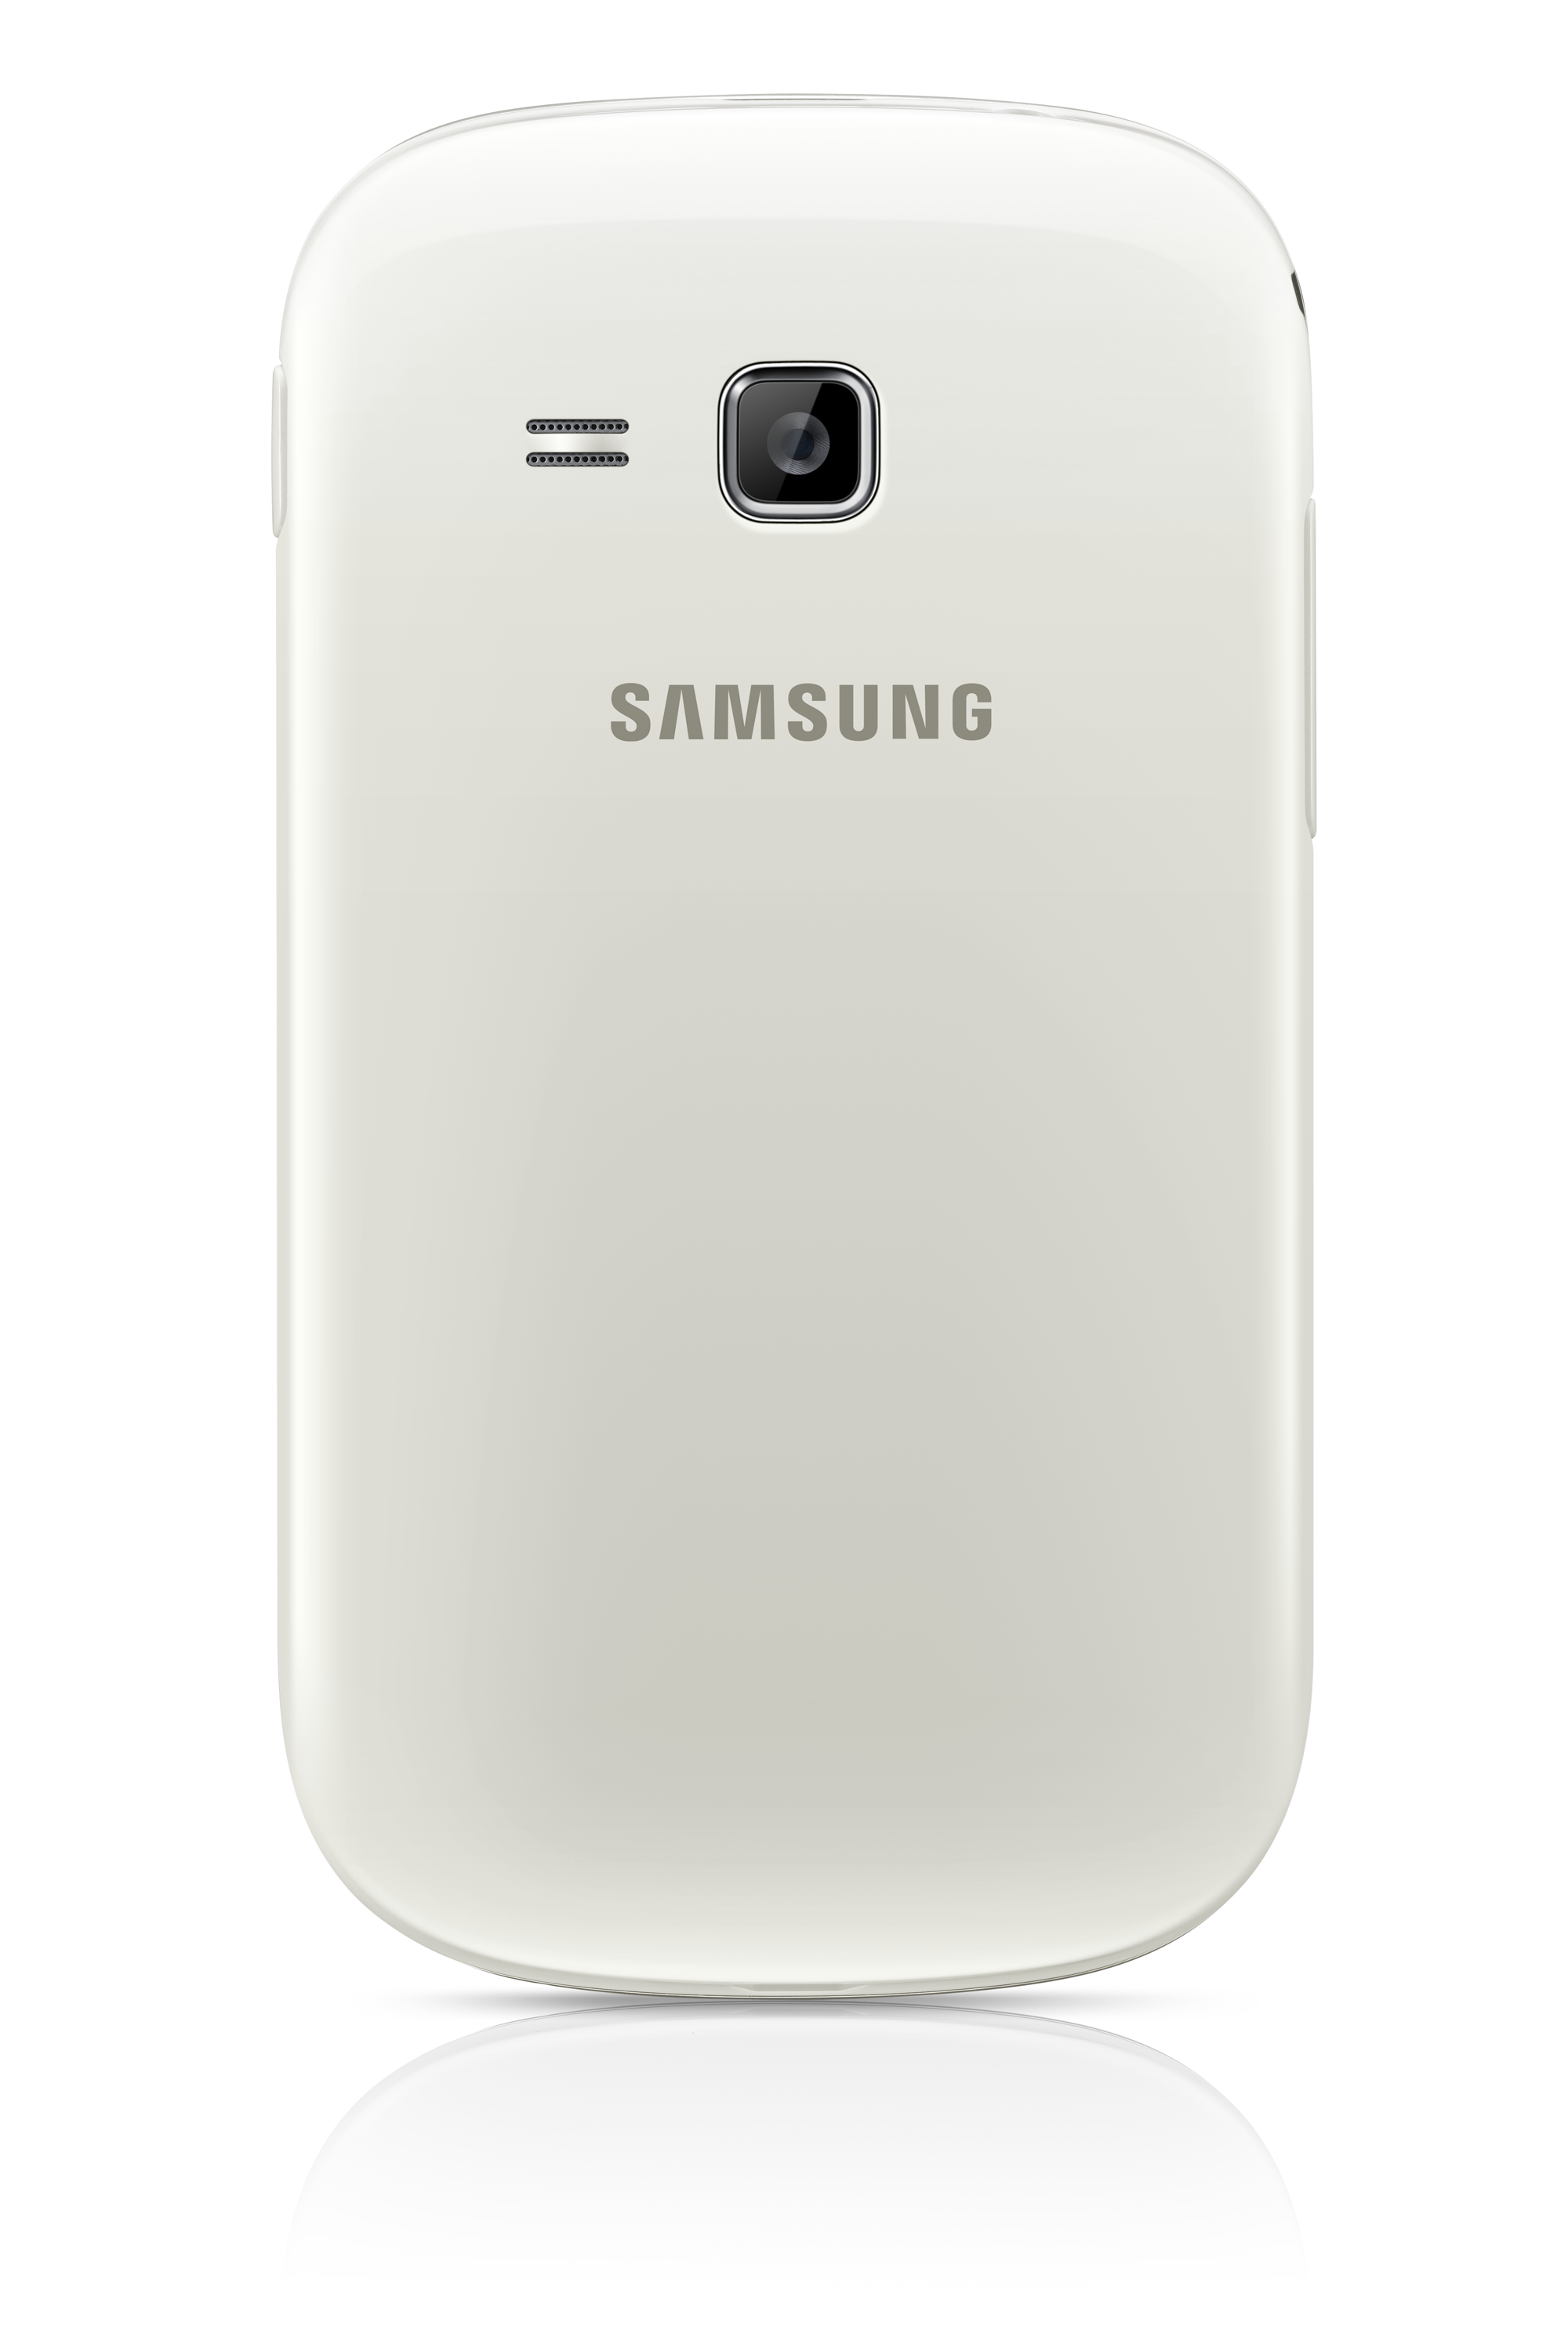 Samsung officially announced REX series - SamMobile - SamMobile